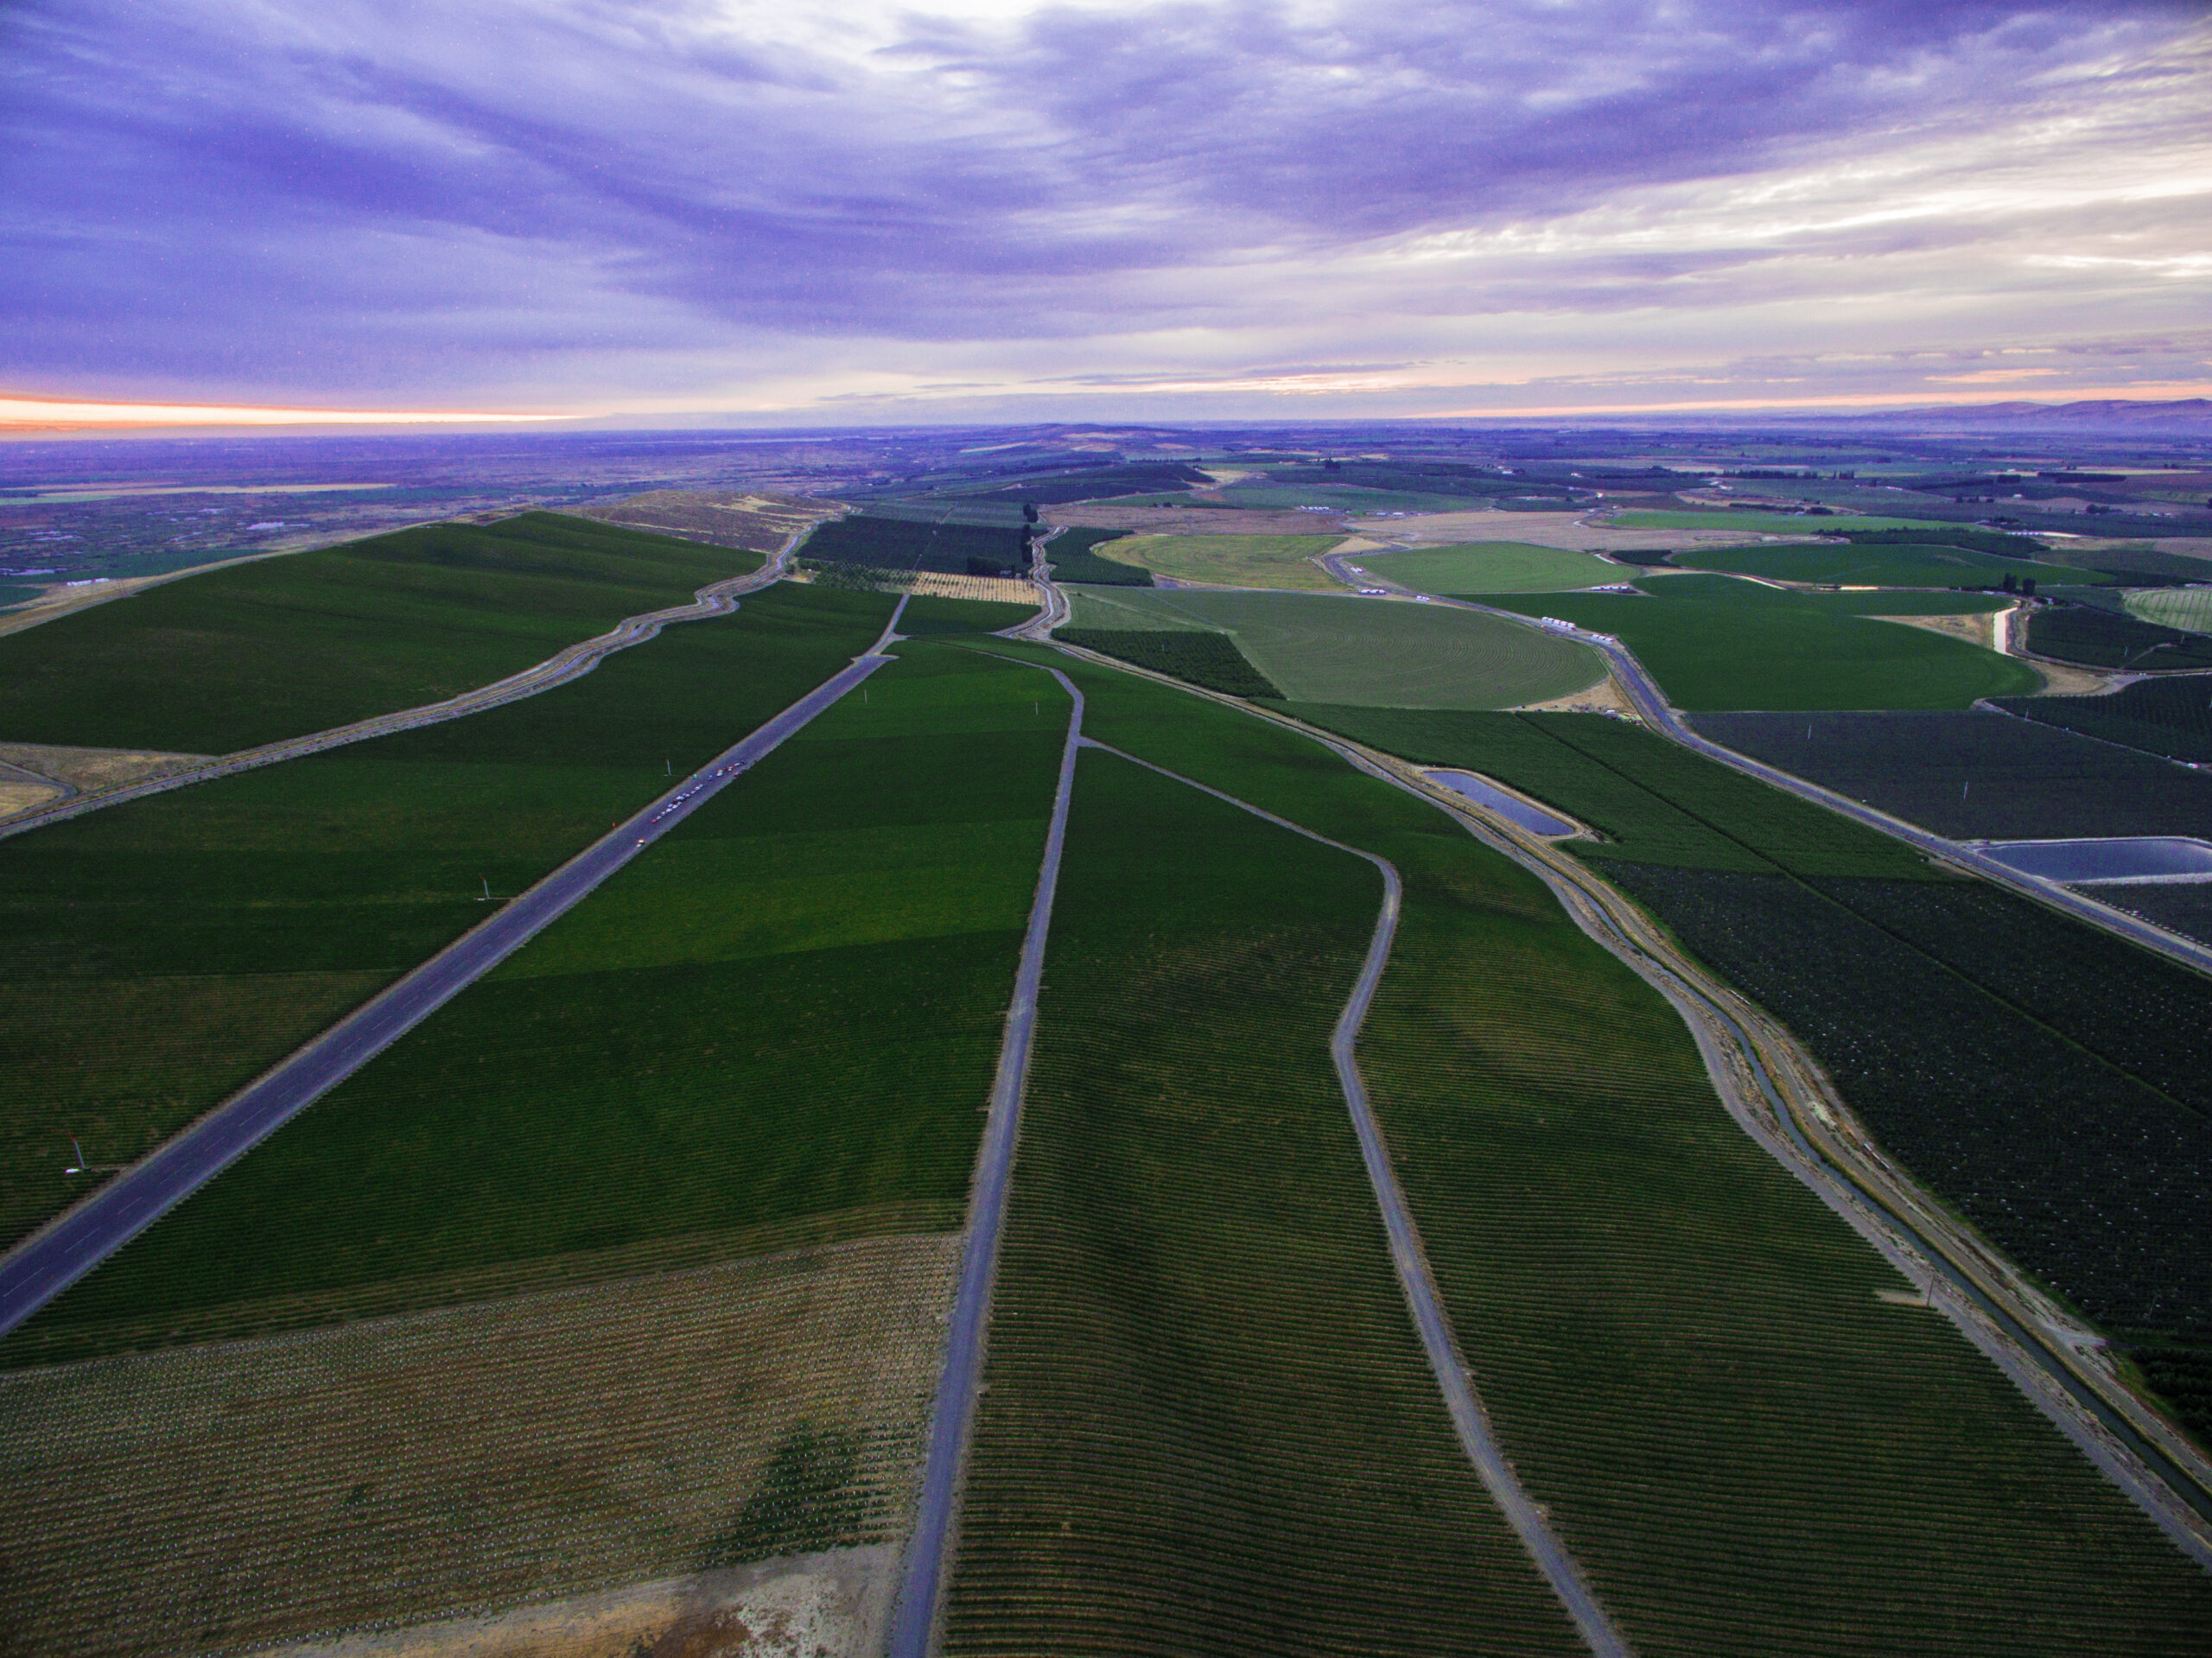 Aerial view of green vineyard blocks at twilight, divided by roads and stretching toward a blue horizon. The sky above is purple and blue.